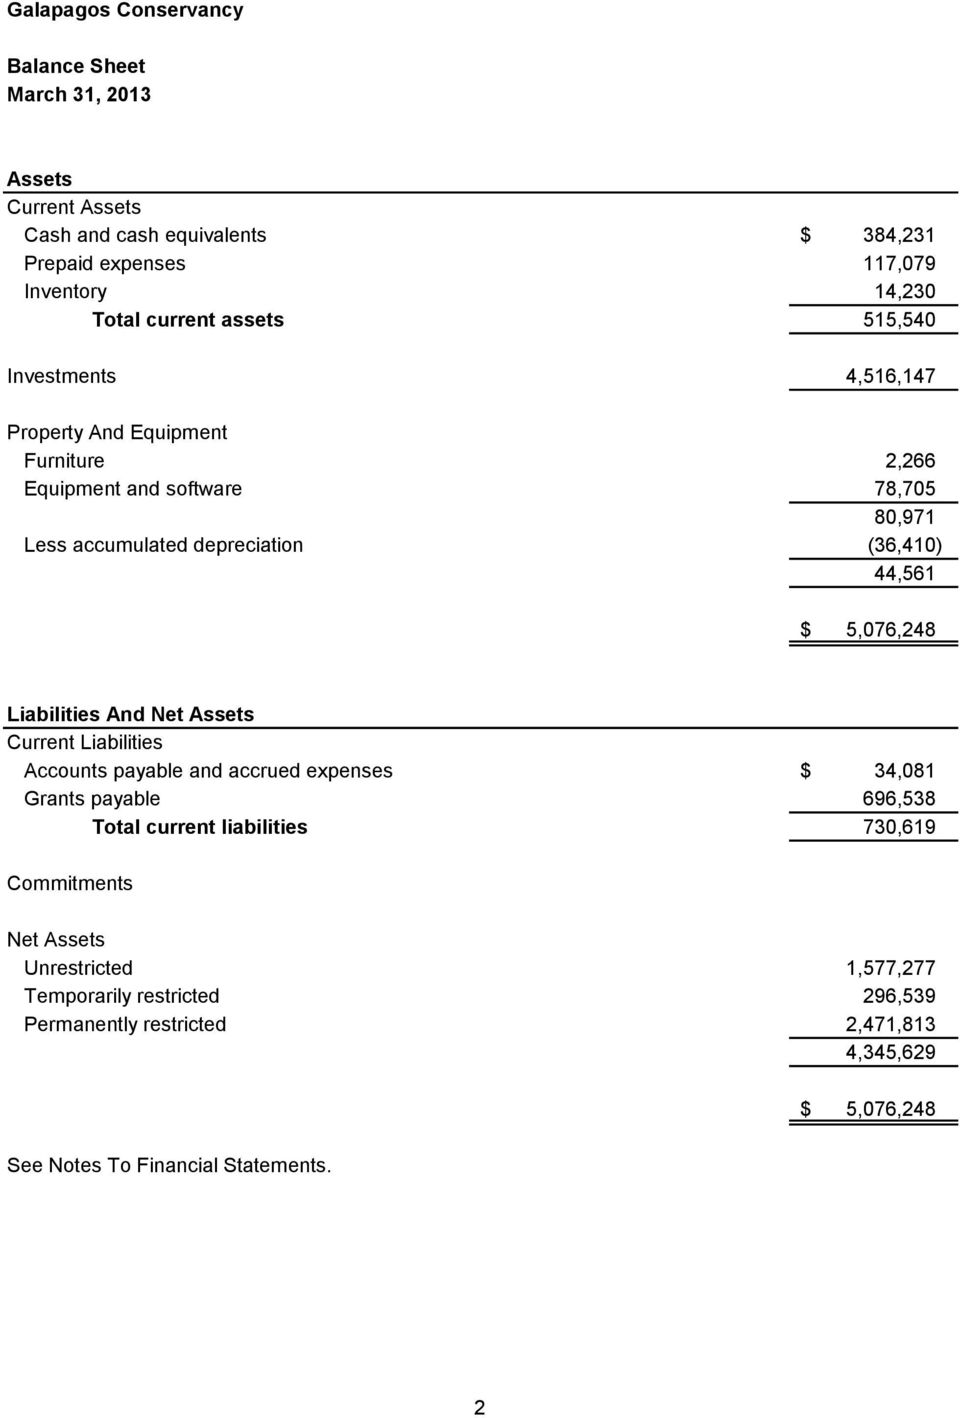 Liabilities And Net Assets Current Liabilities Accounts payable and accrued expenses $ 34,081 Grants payable 696,538 Total current liabilities 730,619